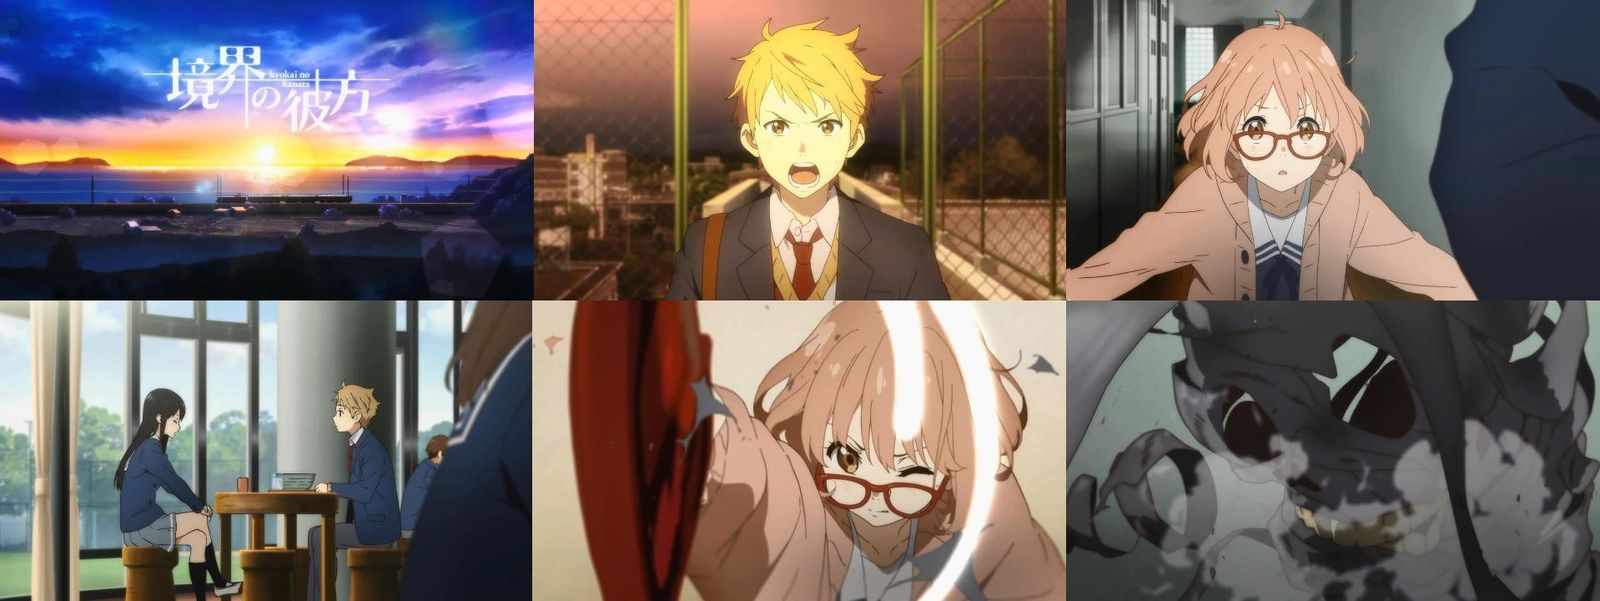 kyoukai-no-kanata-anime-vostfr-telecharger-screenshots.jpg